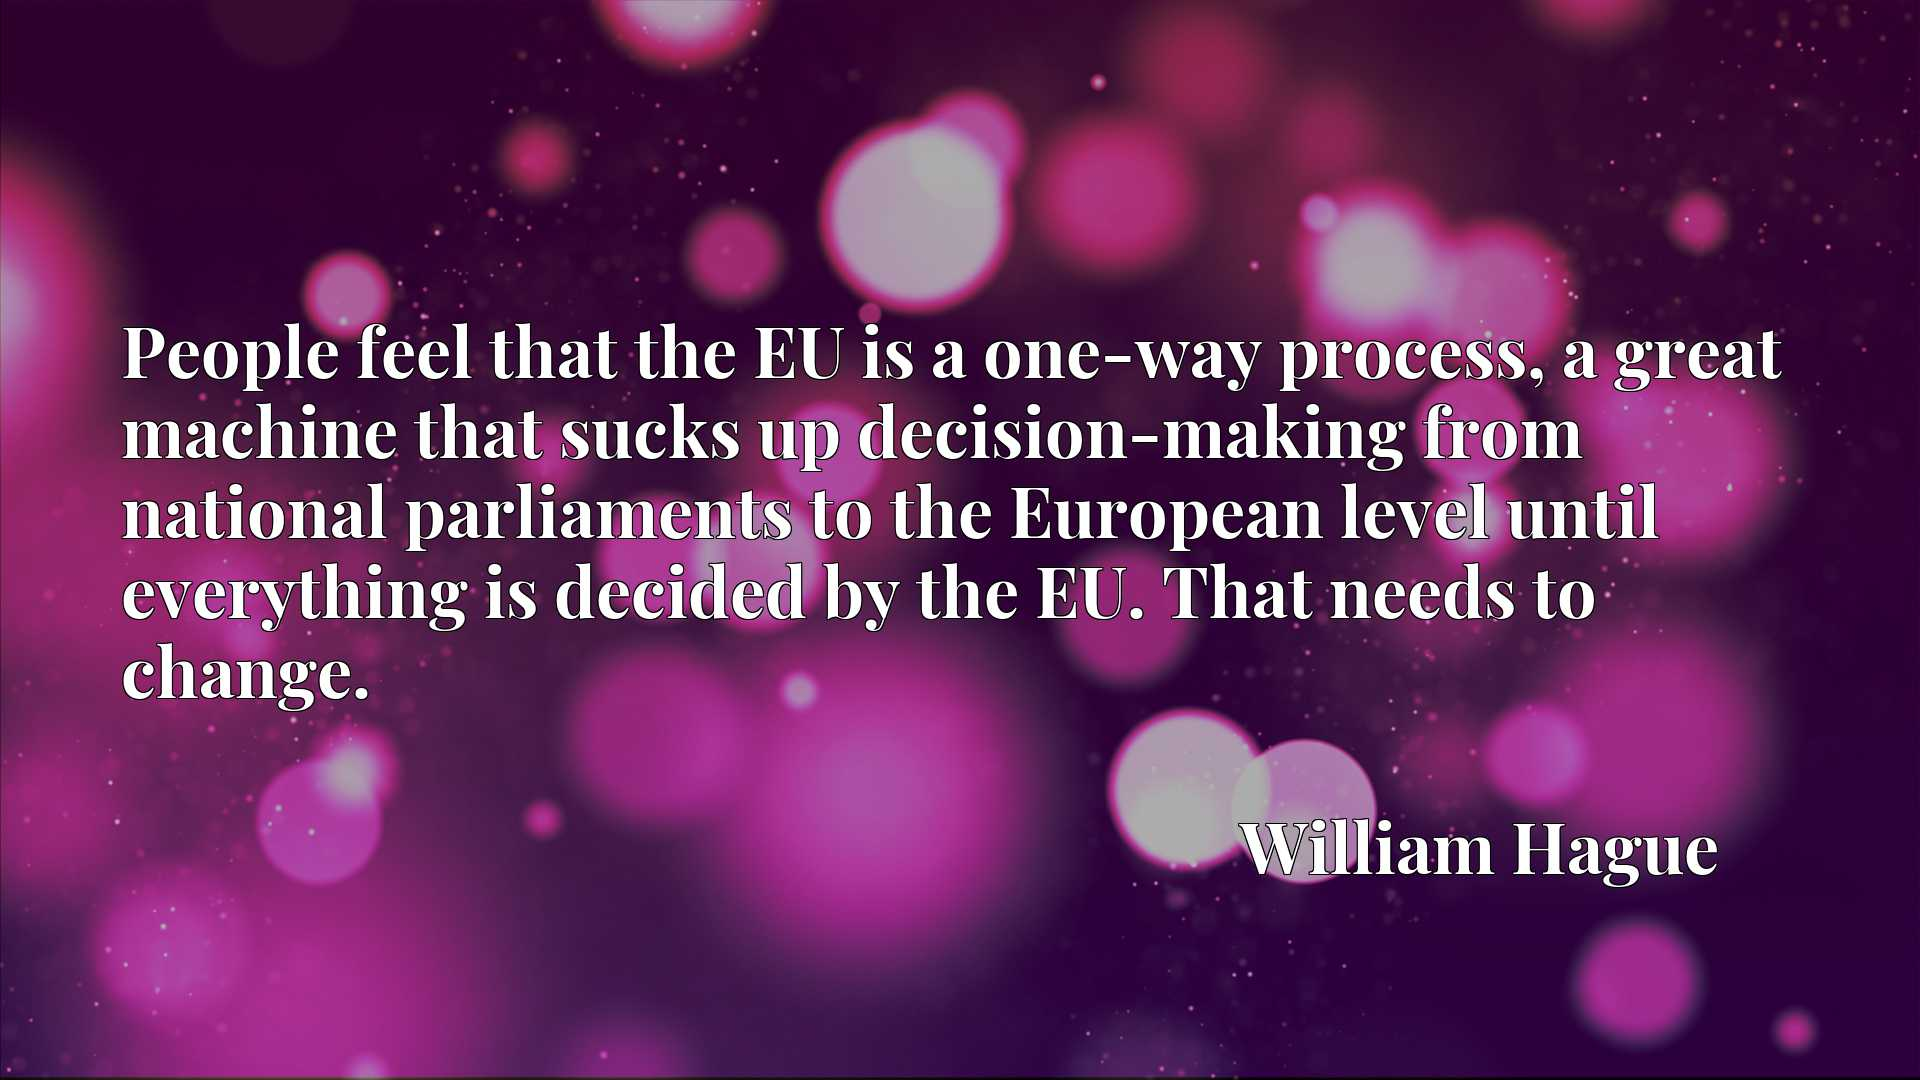 People feel that the EU is a one-way process, a great machine that sucks up decision-making from national parliaments to the European level until everything is decided by the EU. That needs to change.